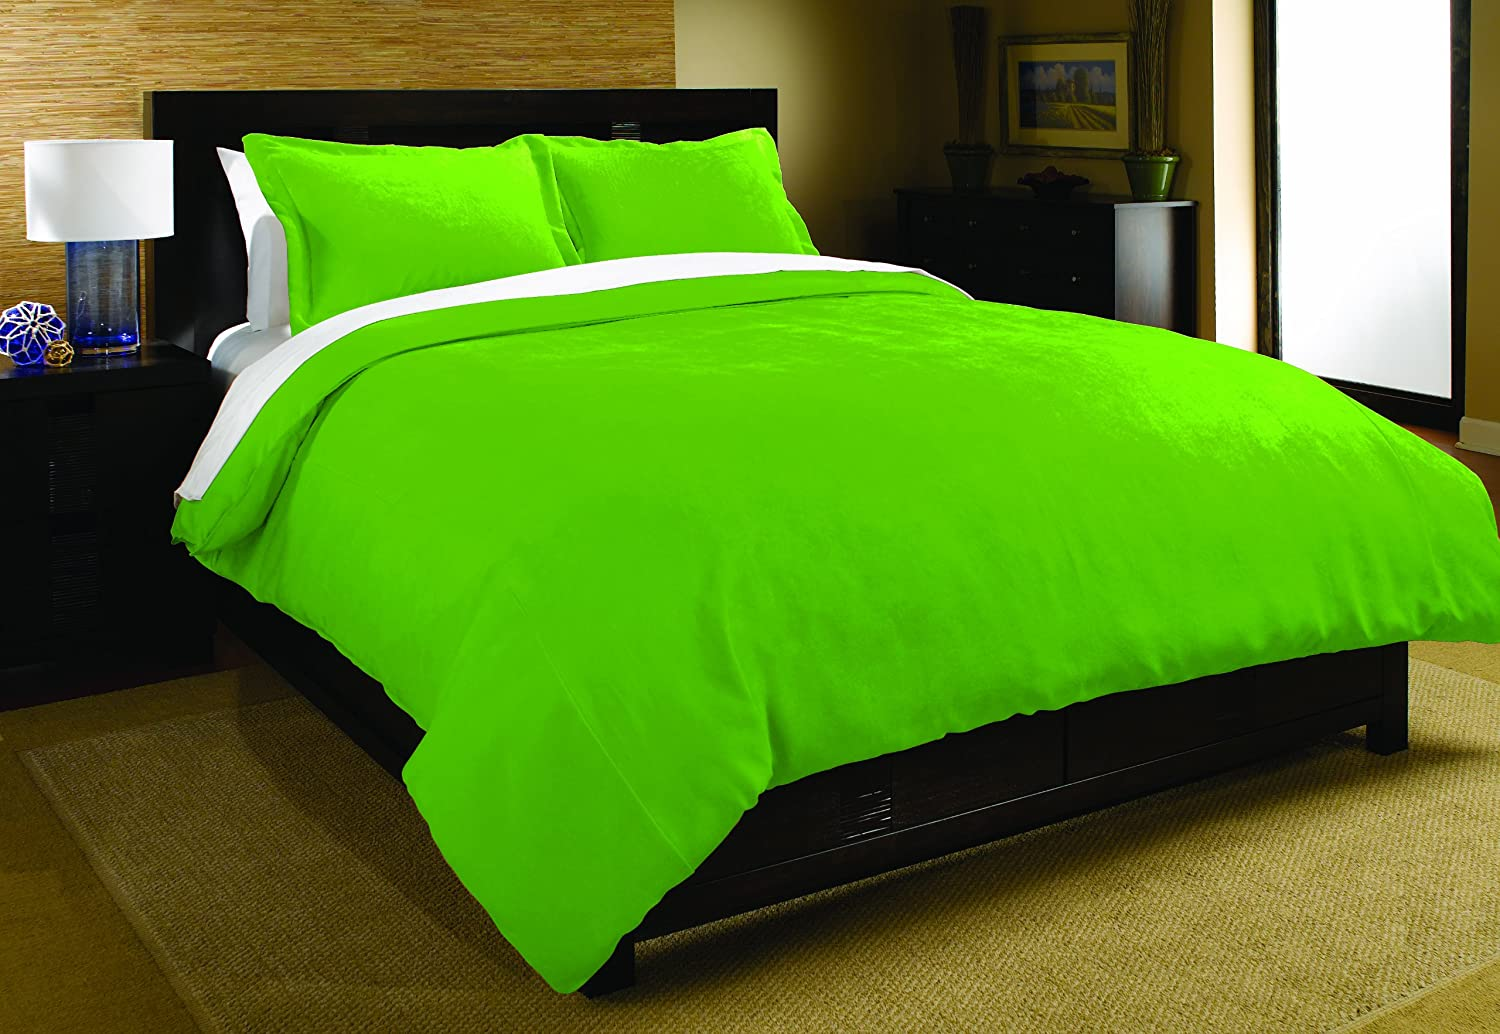 Neon Green Bed Sheets Queen